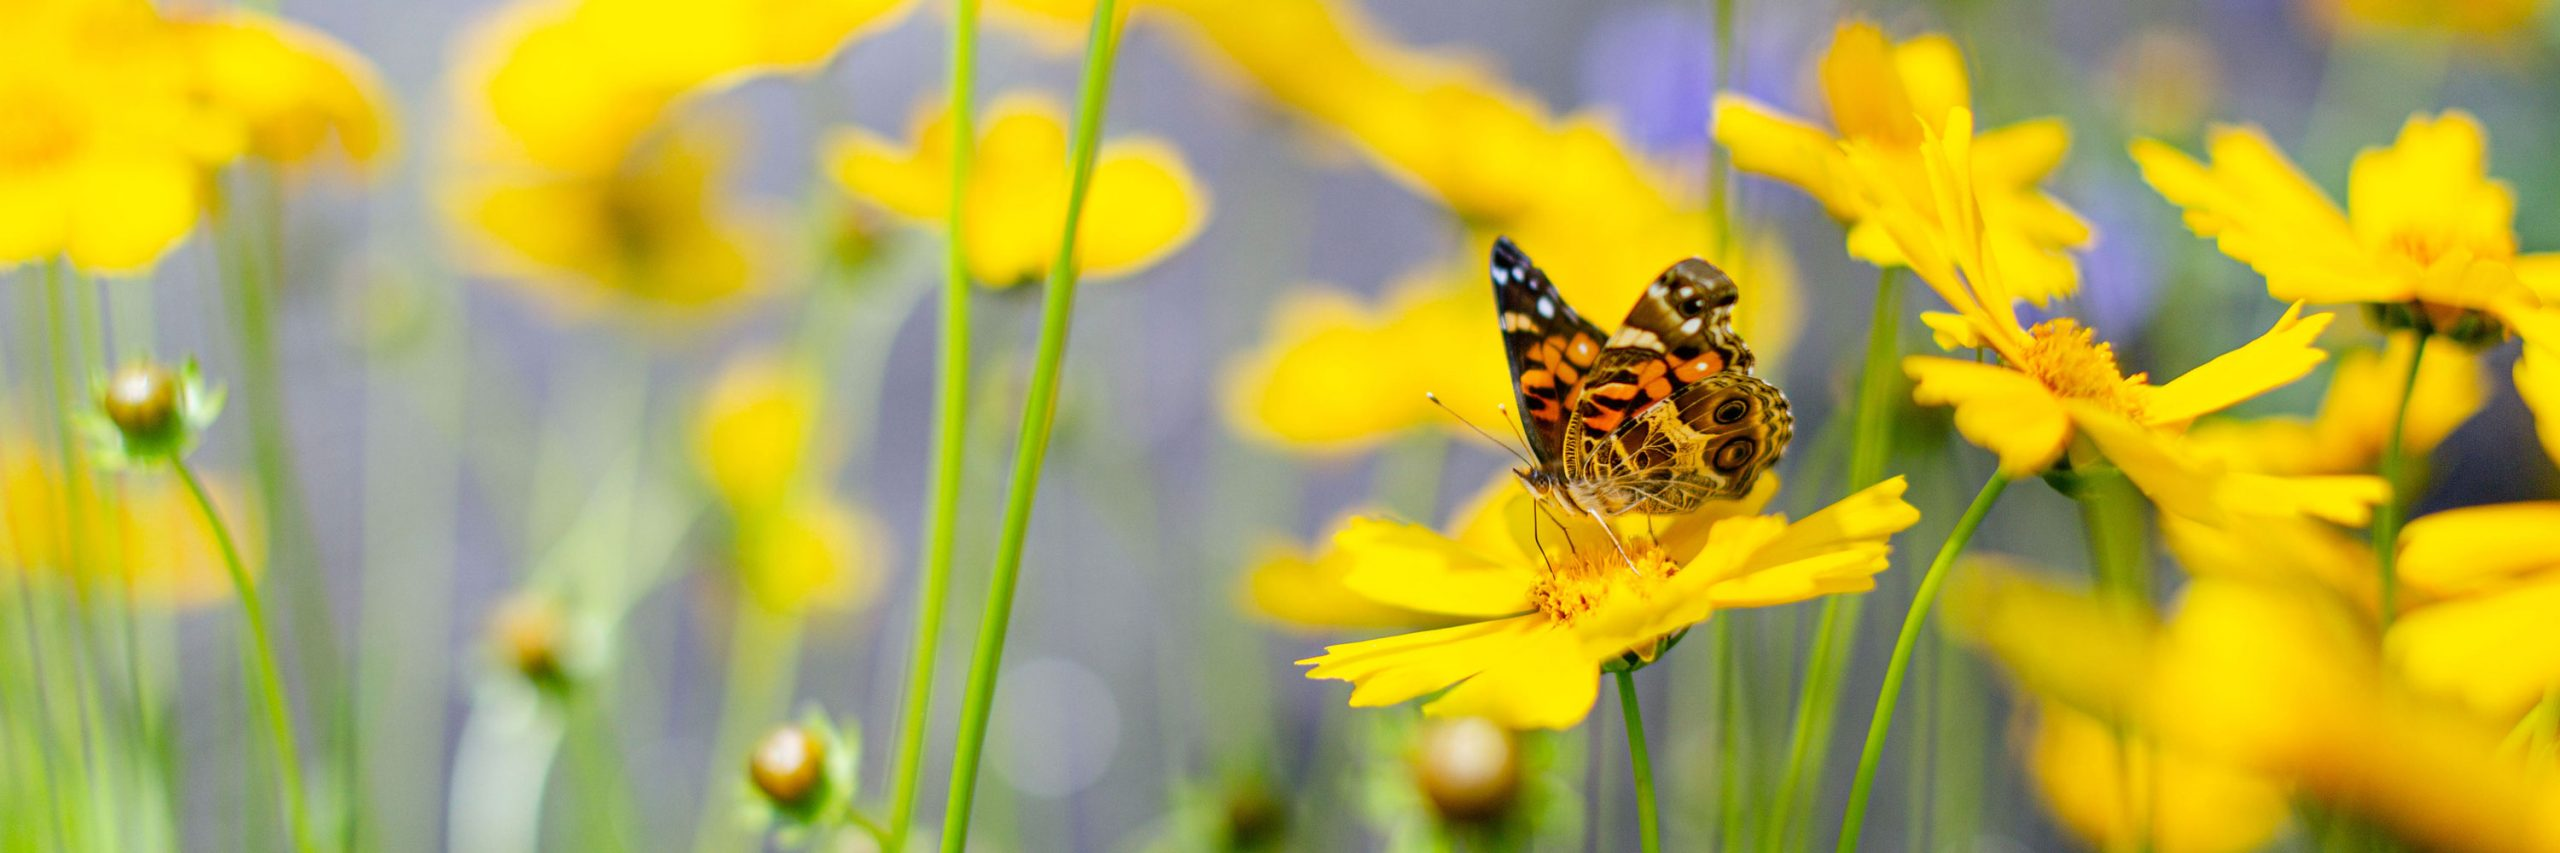 A butterfly perched on a yellow flower